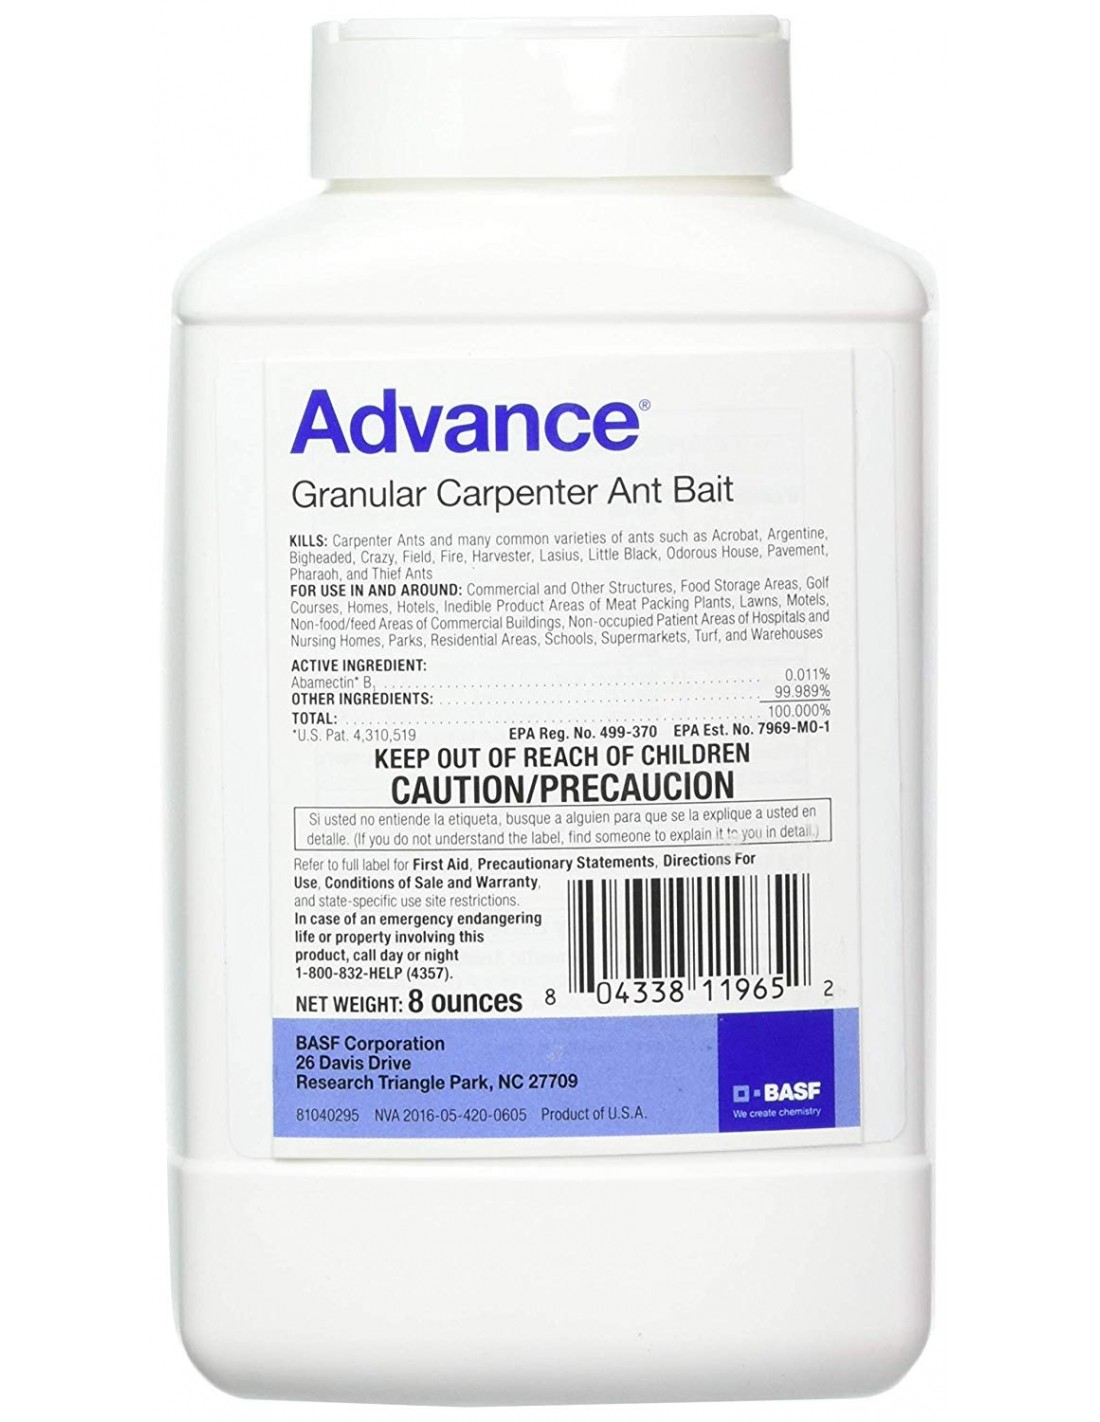 """I have a question about the product """"Advance Carpenter Ant Granular Bait"""". Is this a pet and baby safe product?"""